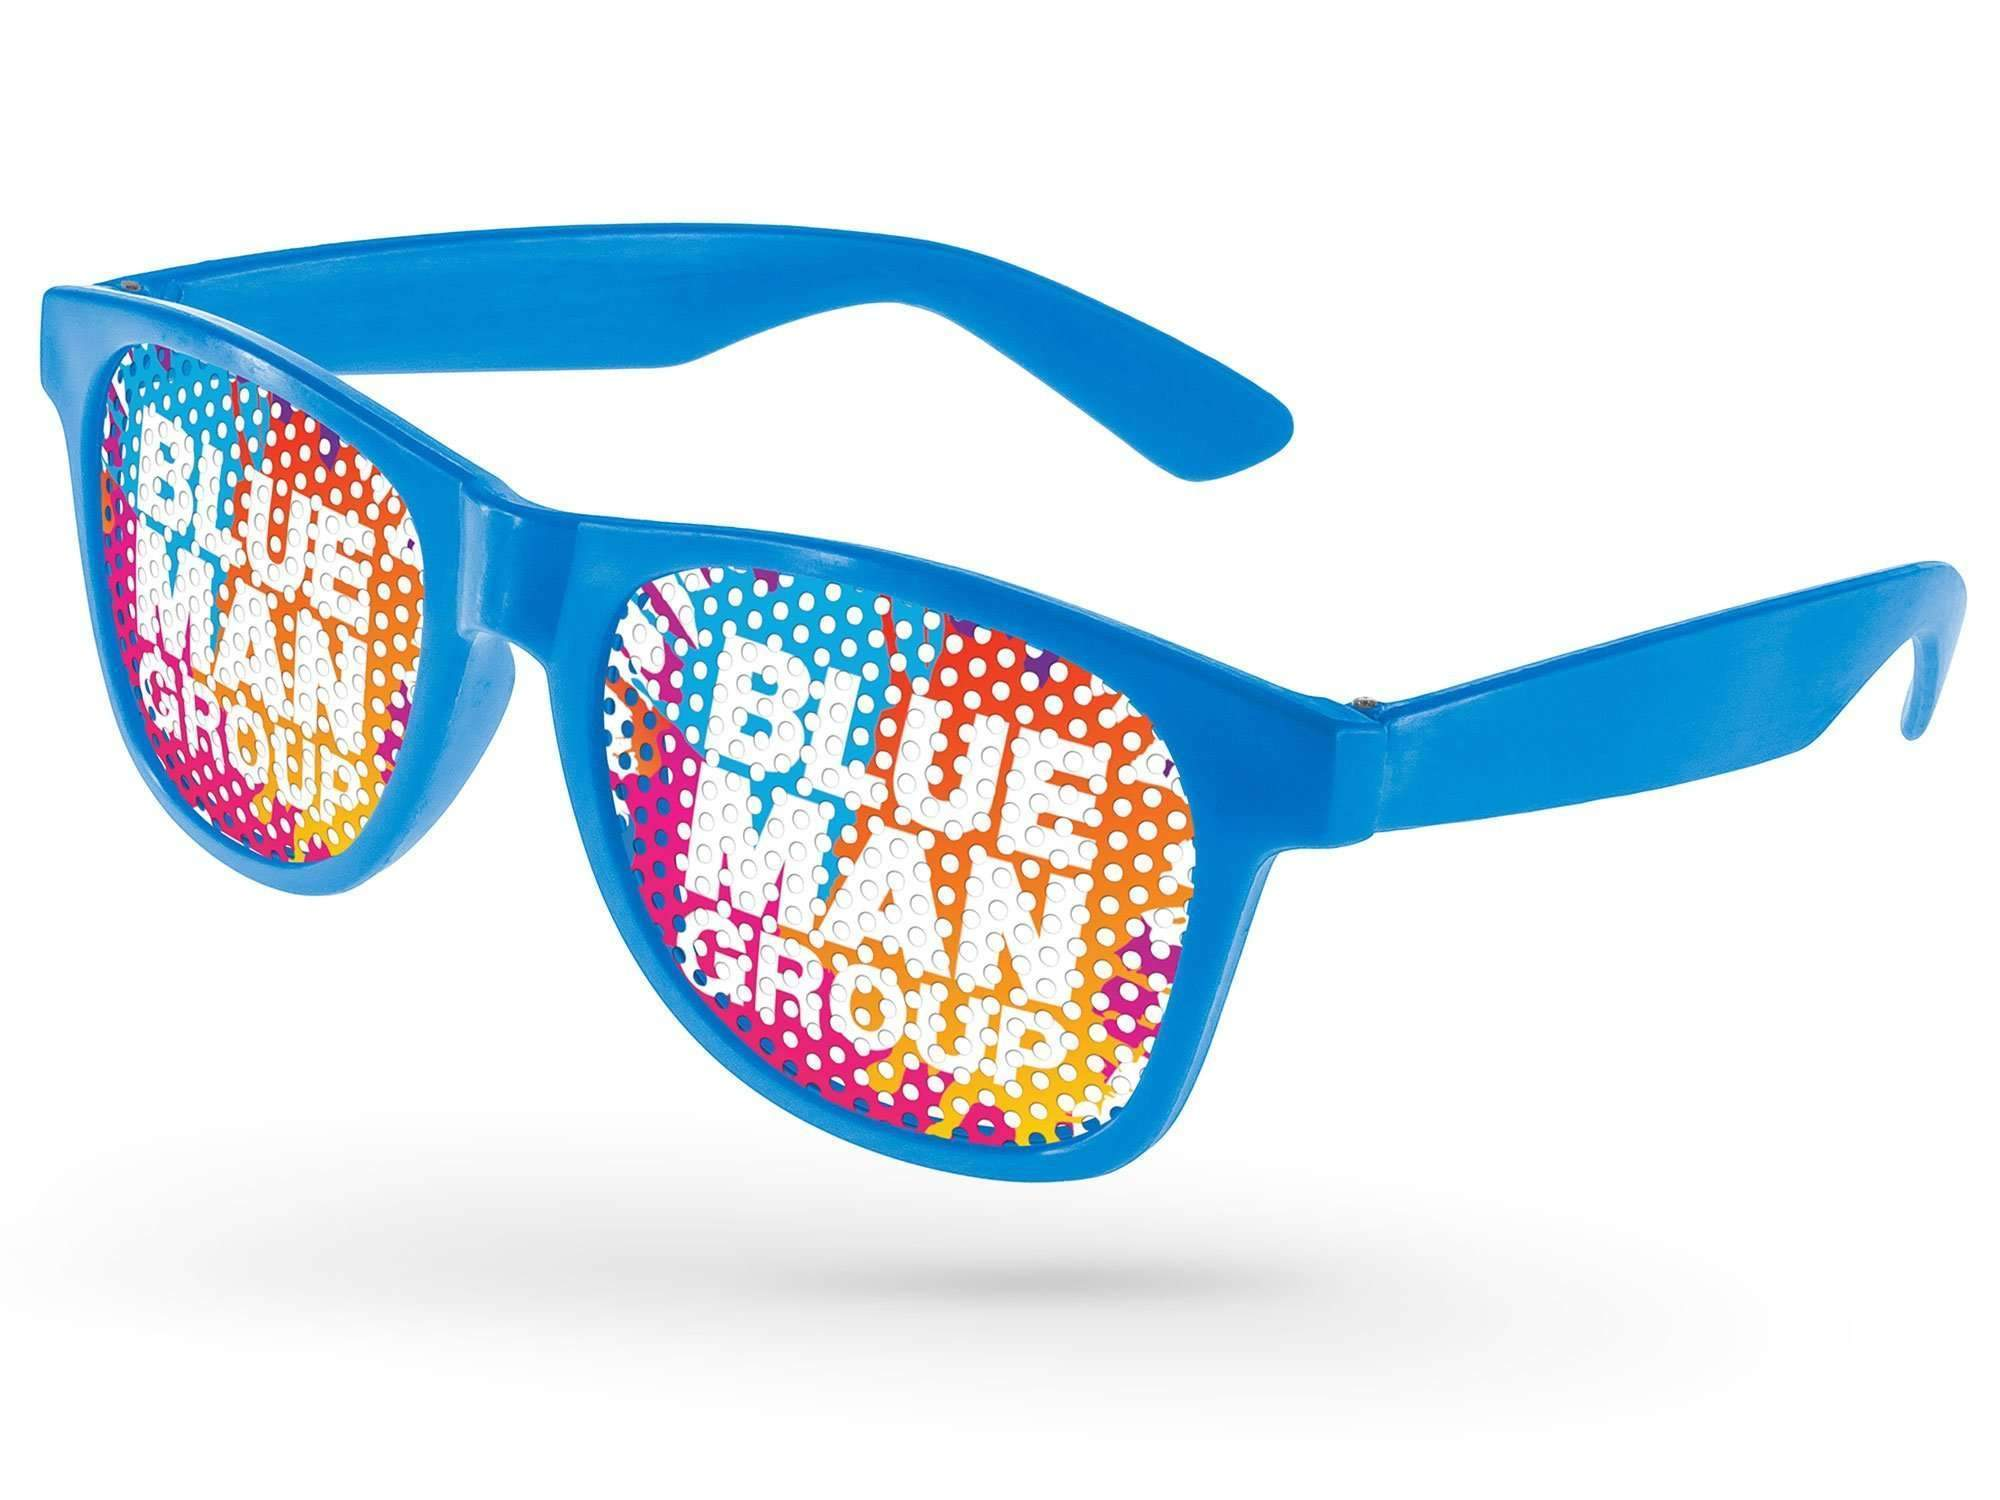 RC100-P - Value Retro Pinhole Promotional Sunglasses